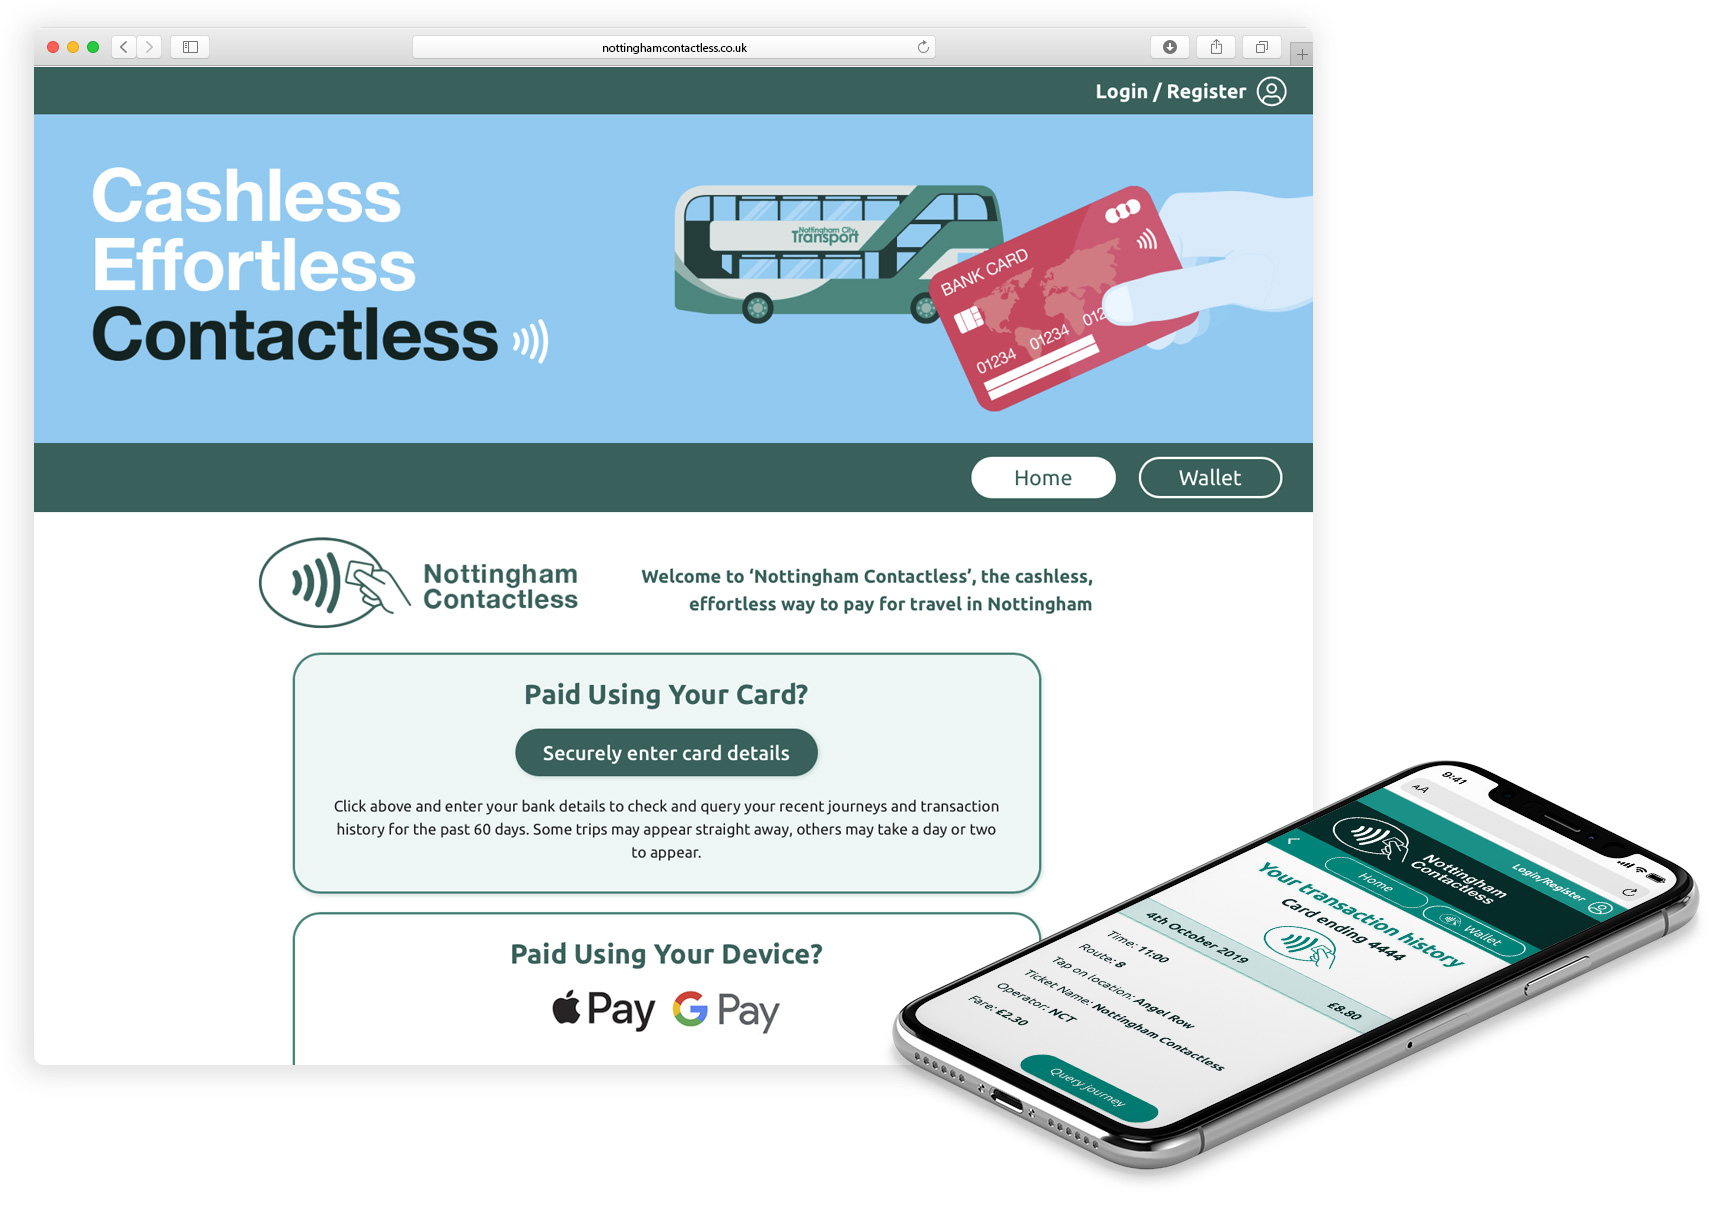 Nottingham Contactless Website image